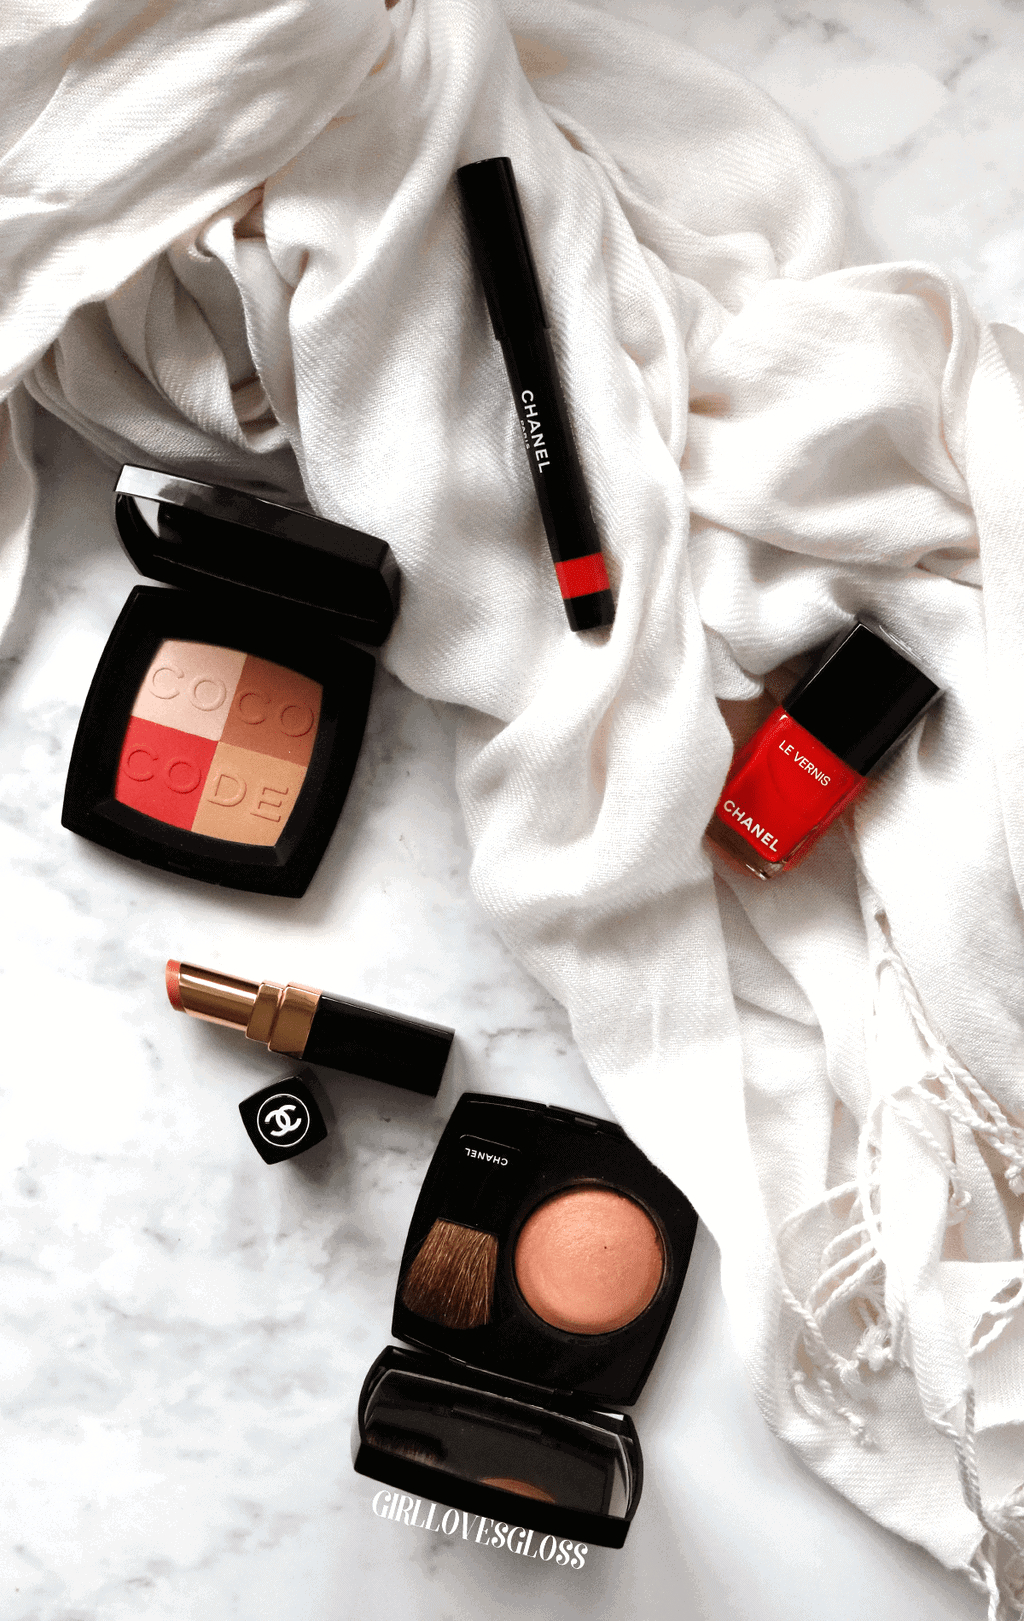 Chanel's Coco Codes Collection and Le Rouge Crayon